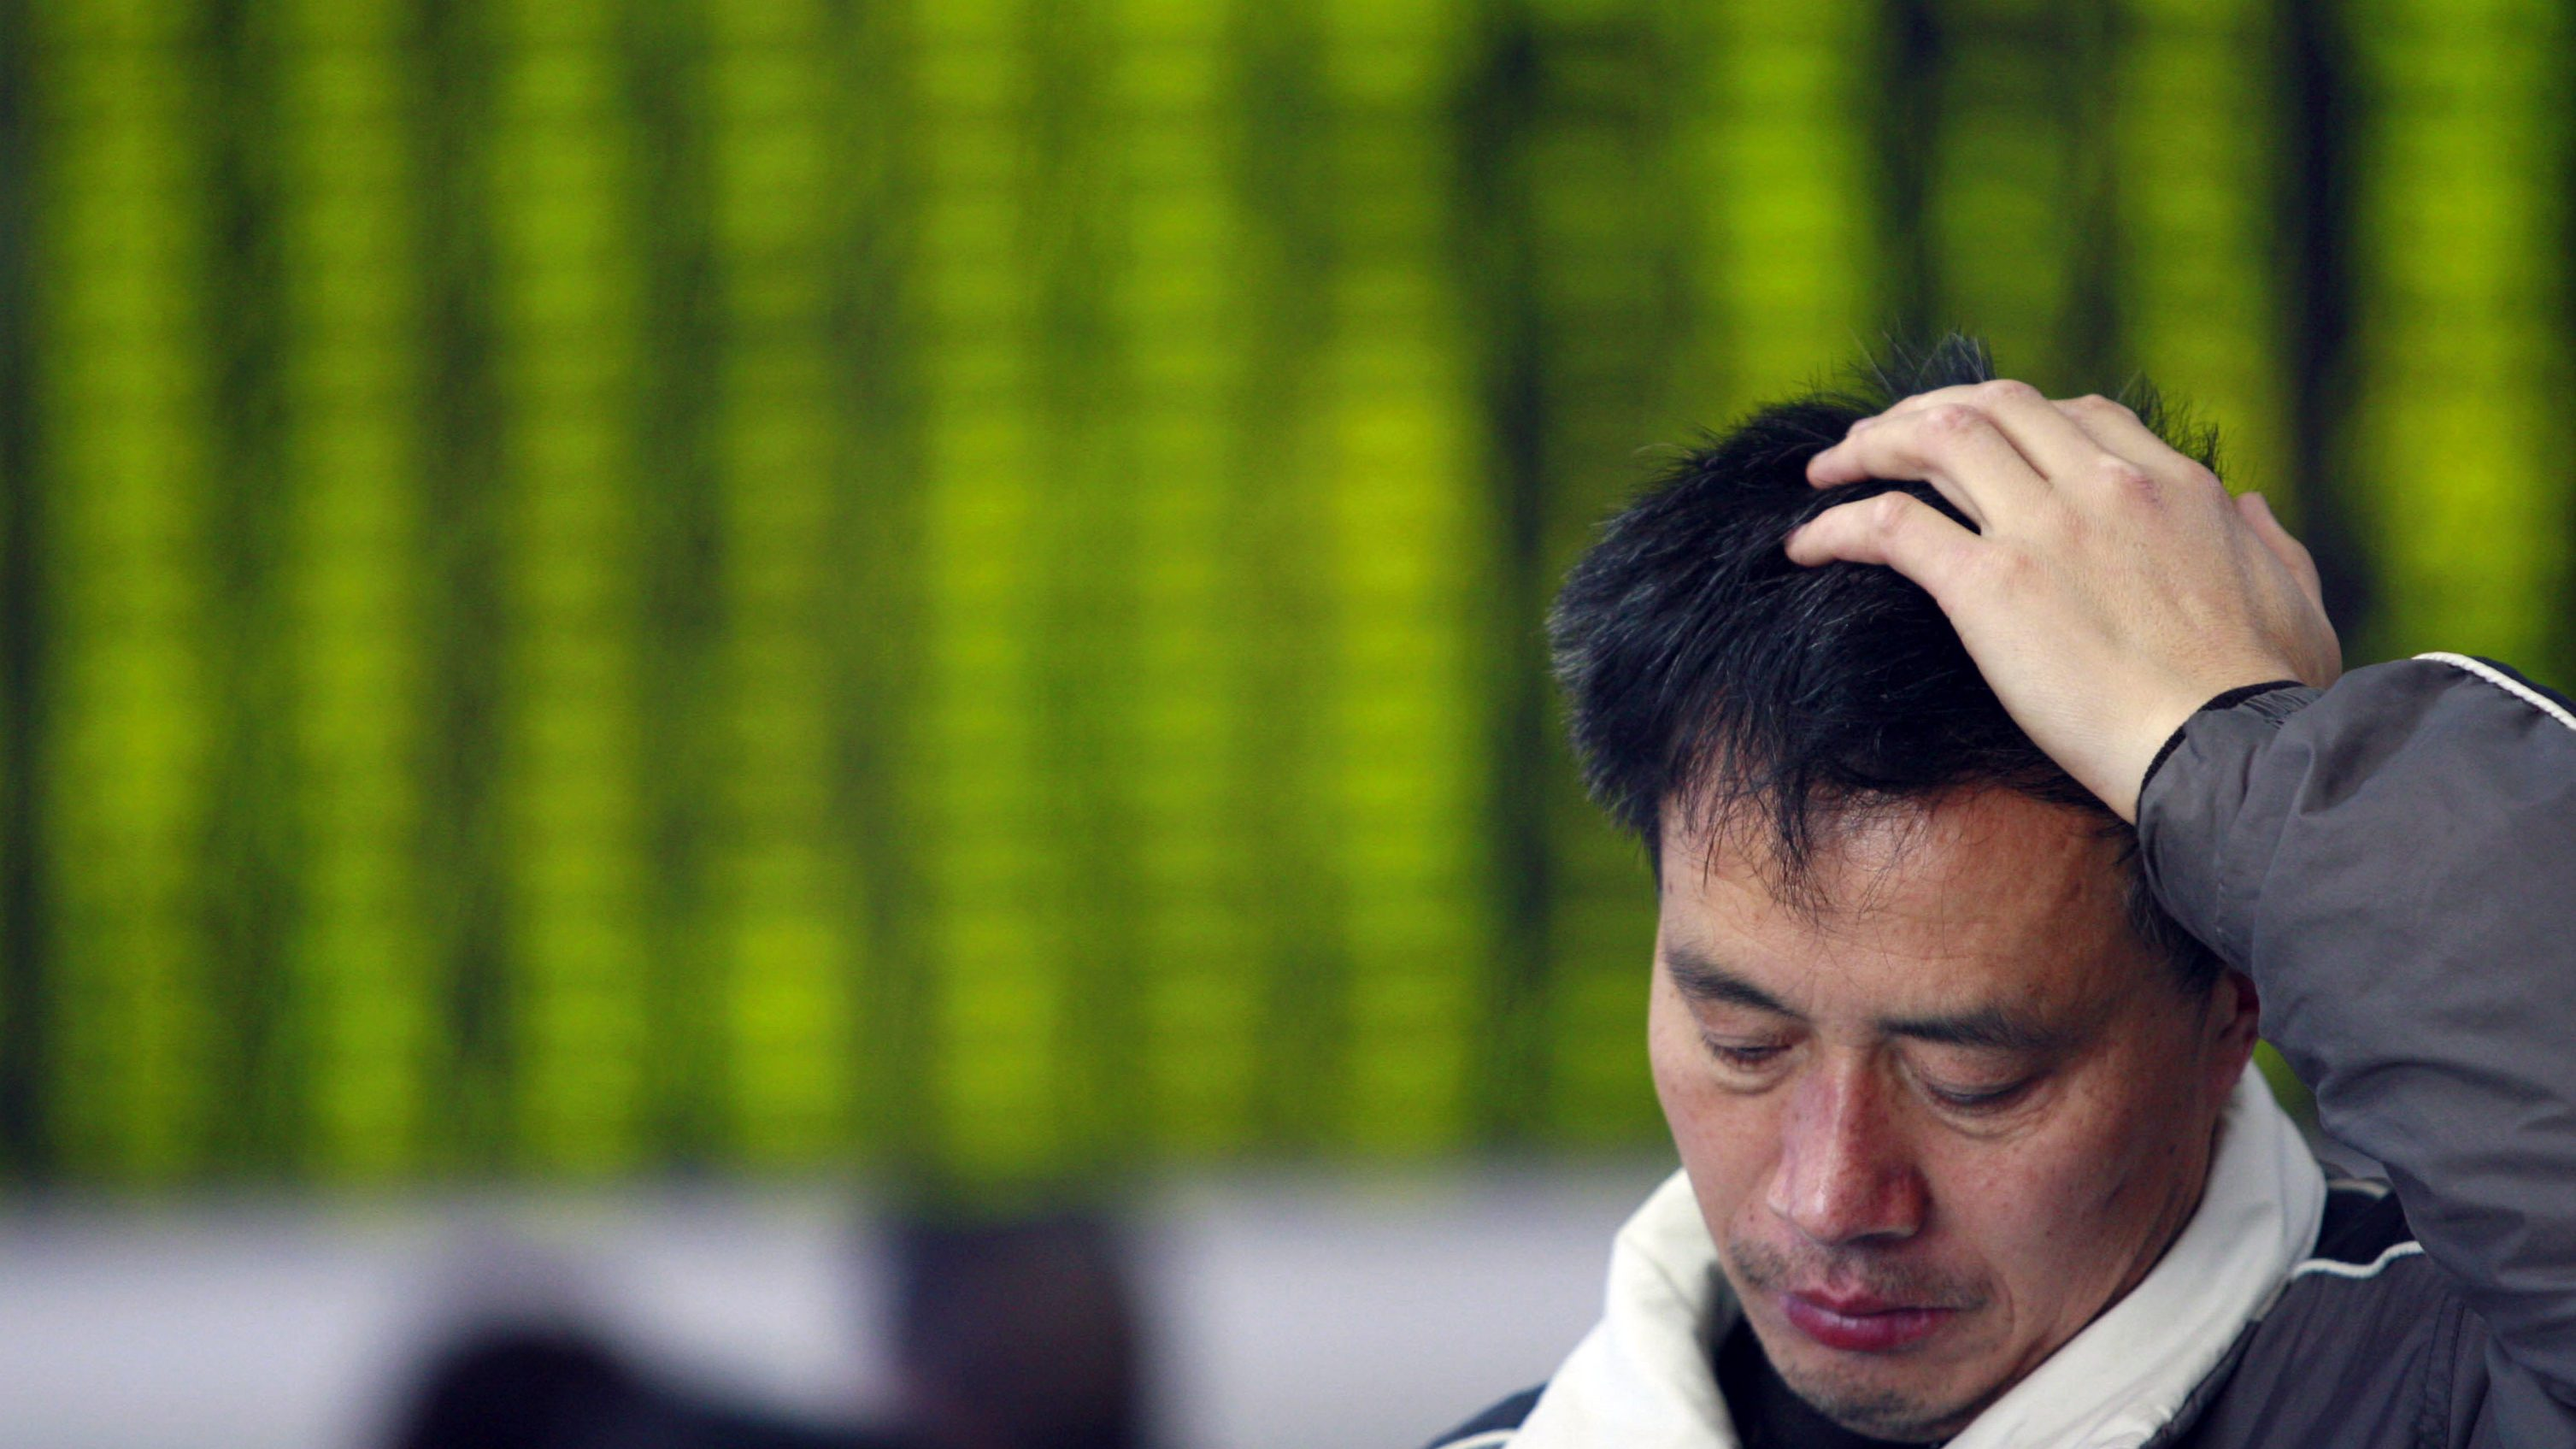 A man gestures in front an electronic board showing stock information at a brokerage house in Suining, Sichuan province March 17, 2008. China's main stock index ended down 3.6 percent on Monday at its lowest close in more than eight months, as already weak market sentiment took further blows from a tumble on Wall Street and a Chinese central bank warning of possible further monetary tightening.   REUTERS/Stringer (CHINA).  CHINA OUT. NO COMMERCIAL OR EDITORIAL SALES IN CHINA. - RTR1YEXD